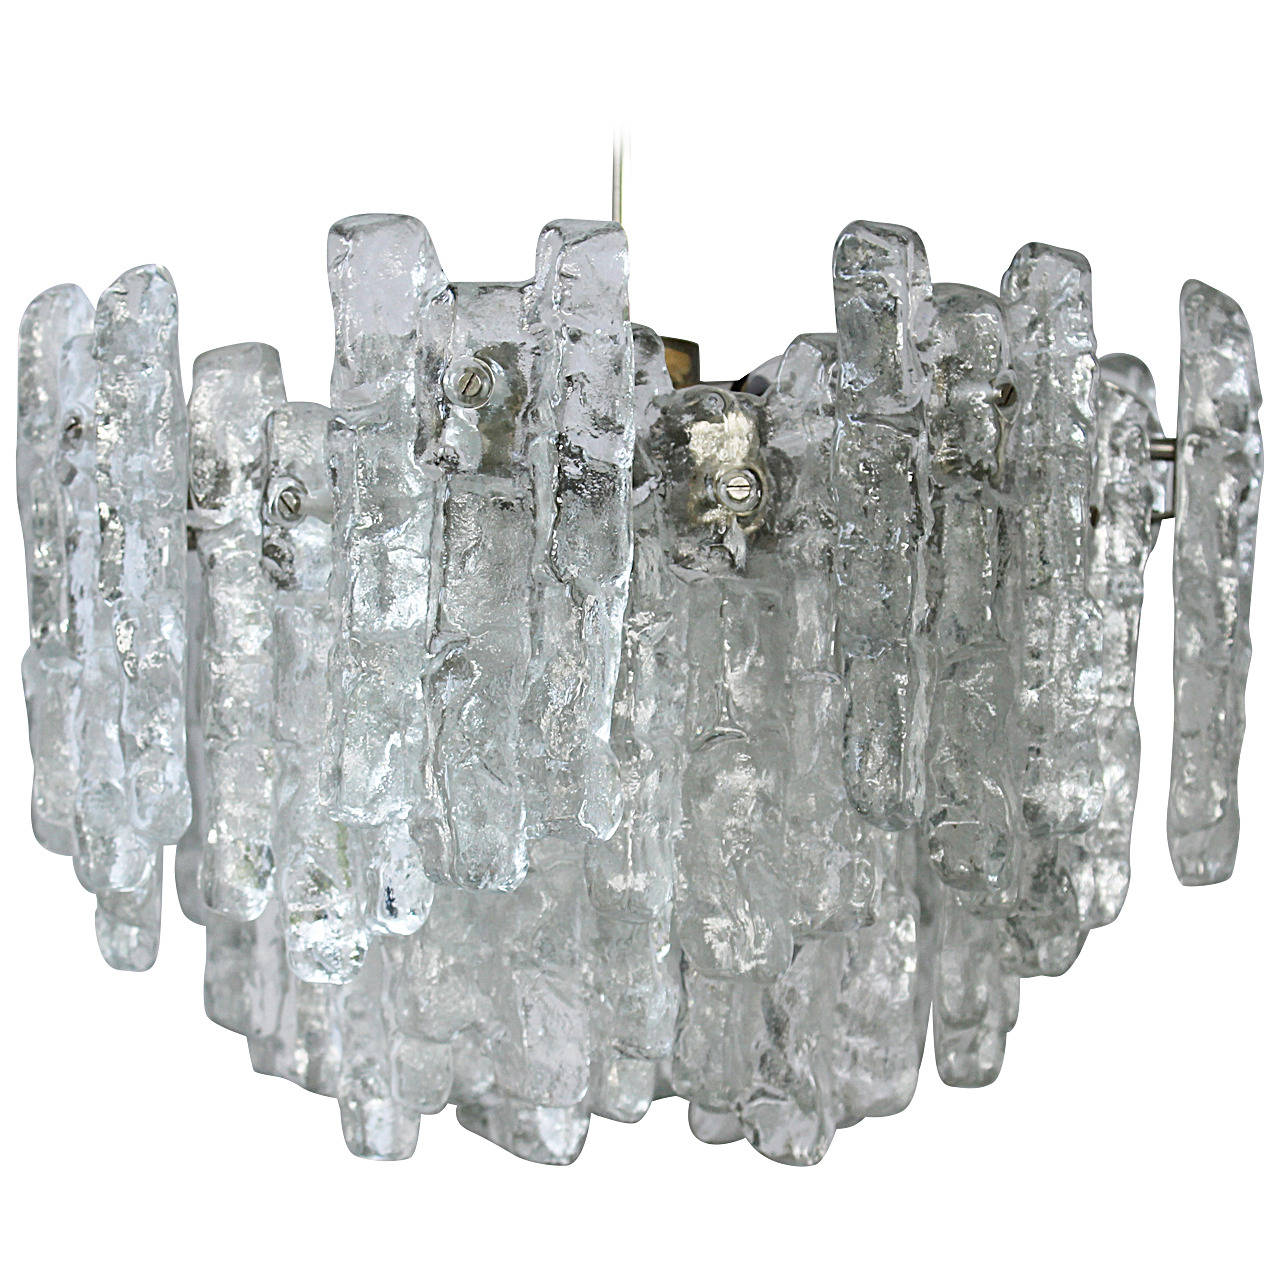 Vintage kalmar icicle chandelier for sale at 1stdibs vintage kalmar icicle chandelier for sale aloadofball Image collections